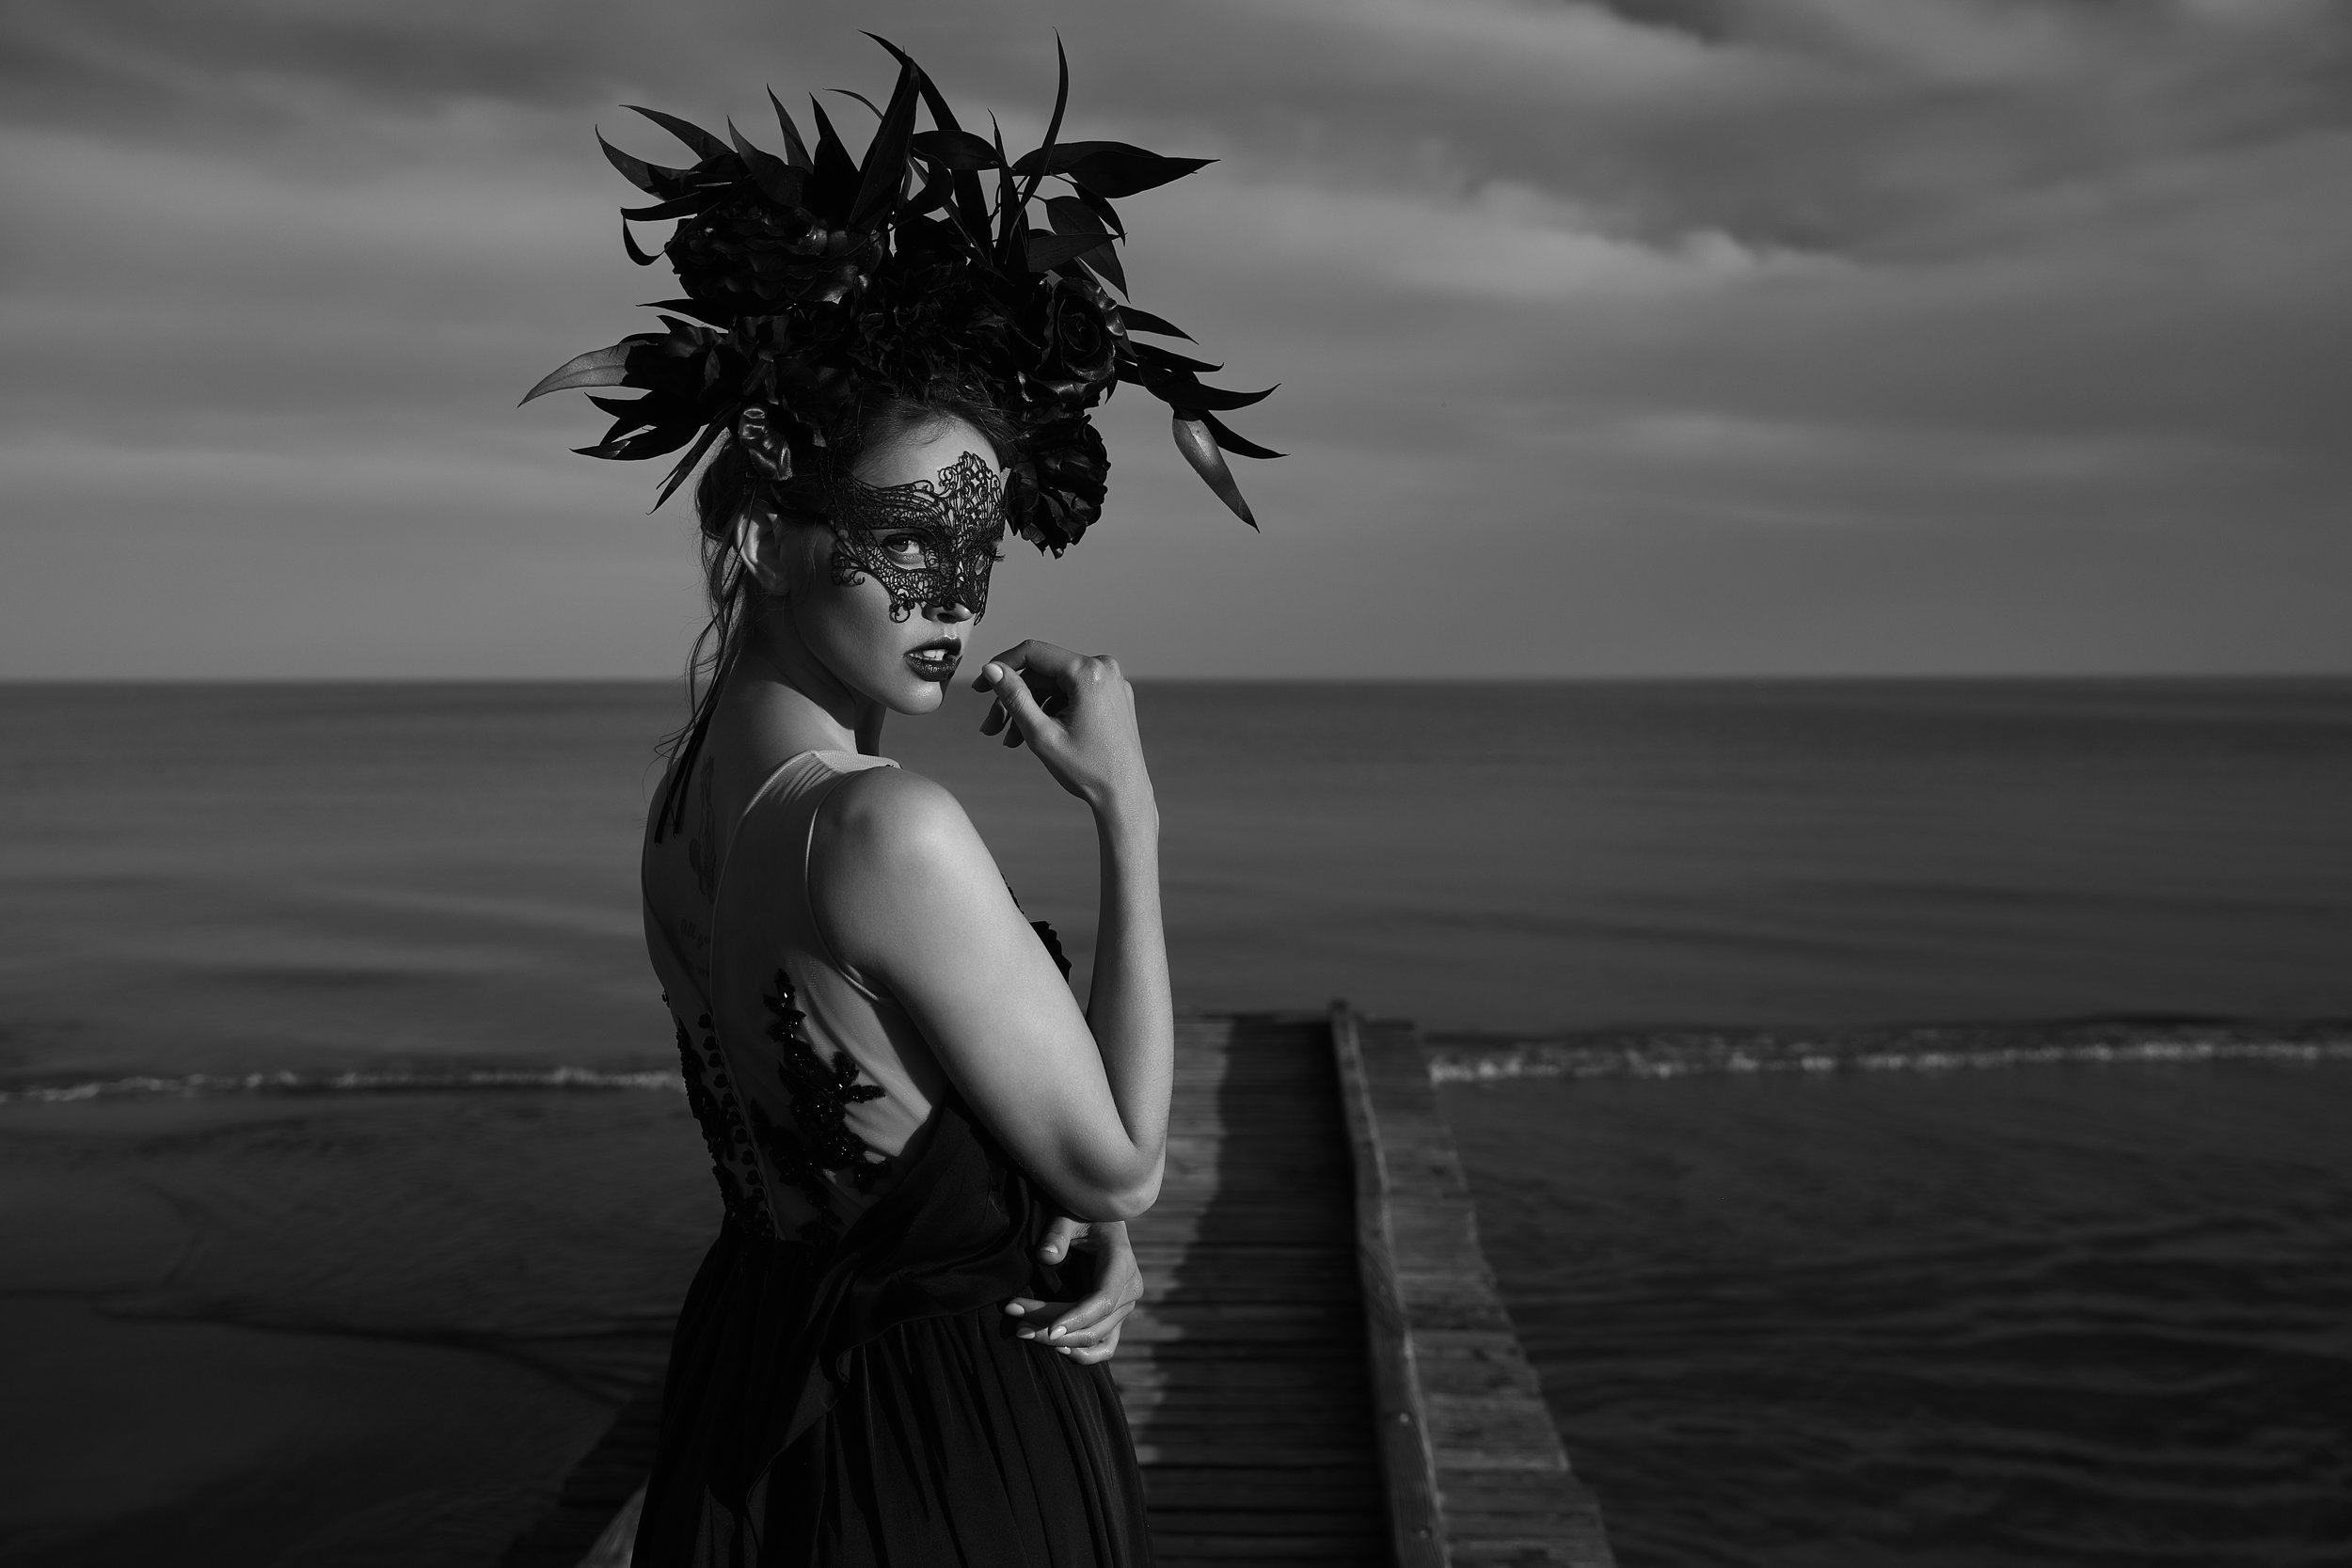 Black and white dramatic portrait of beautiful emotional woman with black lace mask on face and big floral crown on head stands on wooden pier. Dark clouds and sea on background